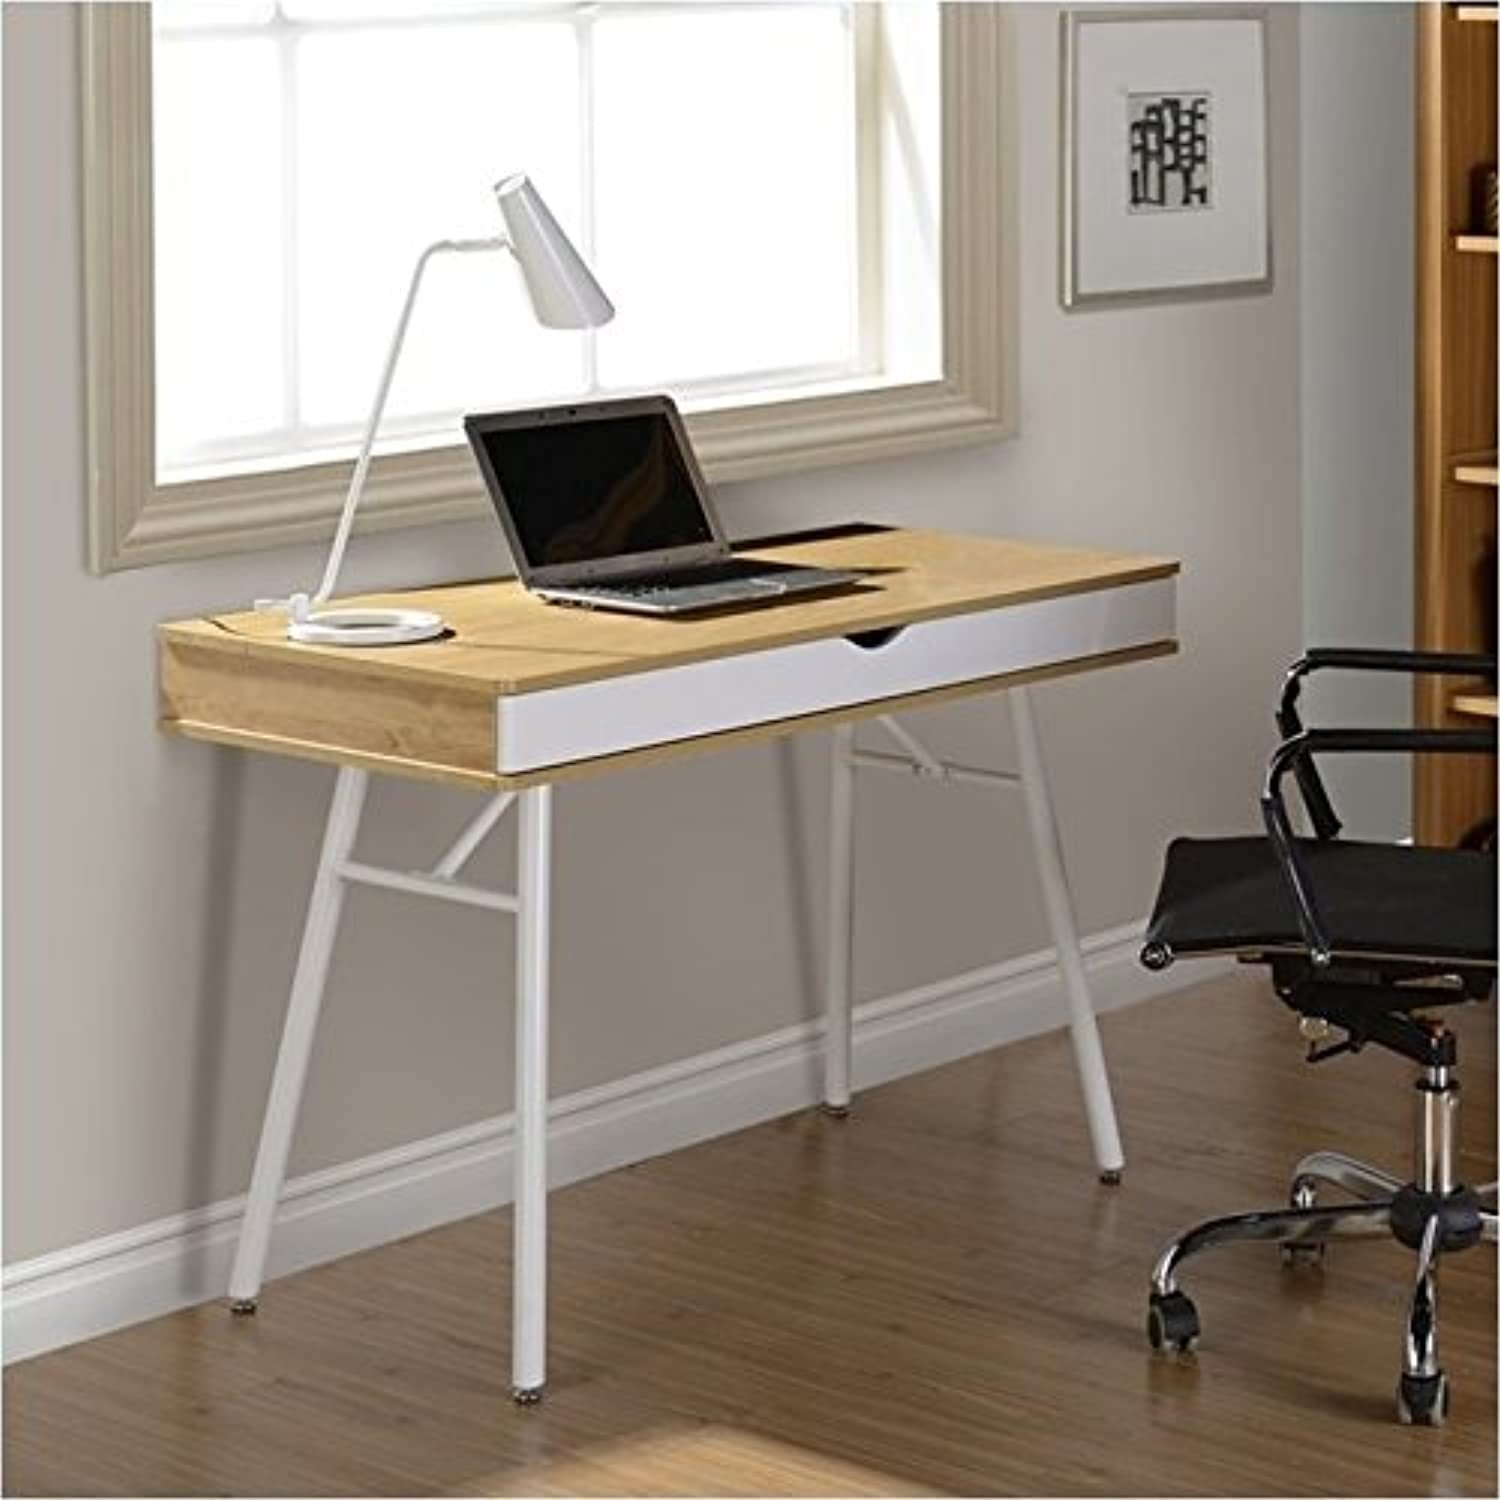 Pemberly Row Workstation with Cord Management and Storage in Pine